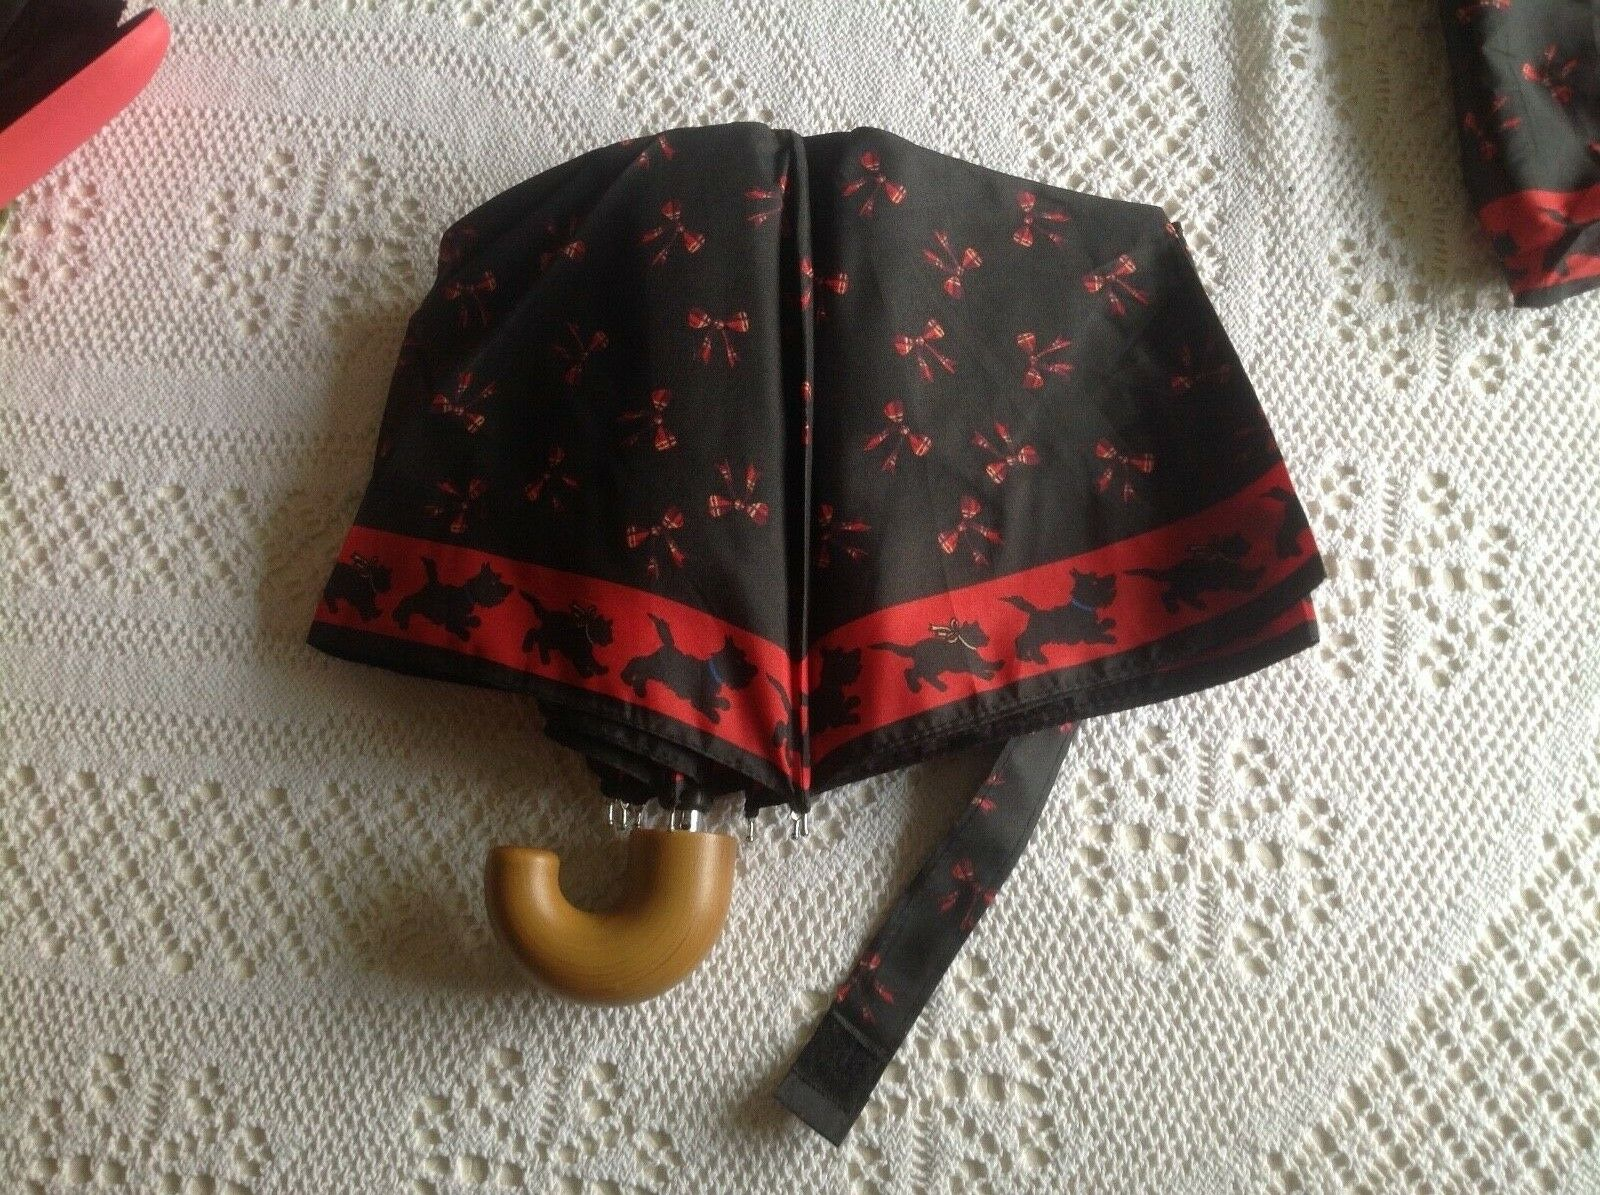 New folding umbrella +cover, limited edition, featuring Scottie dogs+tartan bows